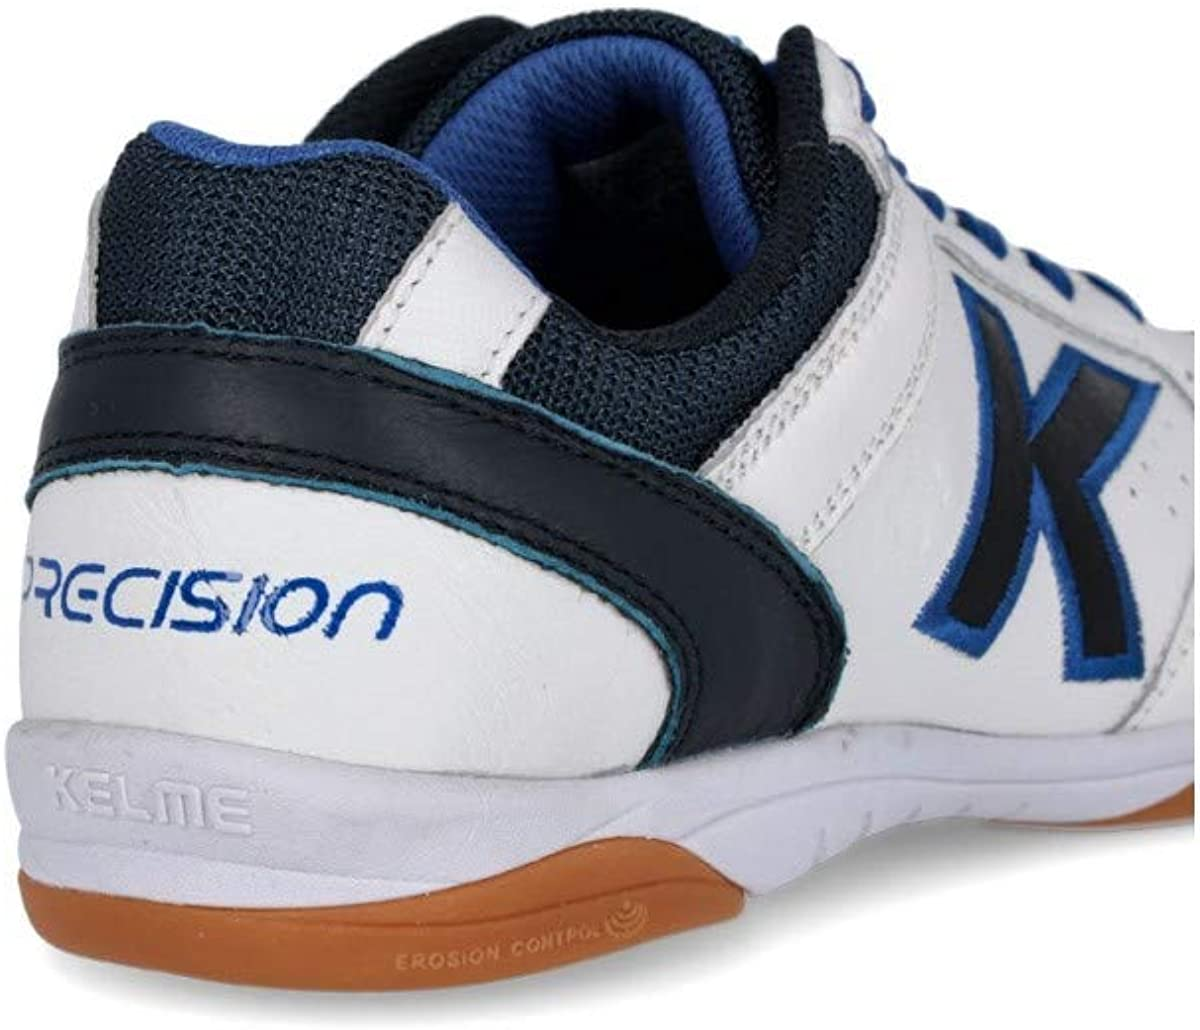 Kelme - Zapatillas Precision Elite: Amazon.es: Zapatos y complementos